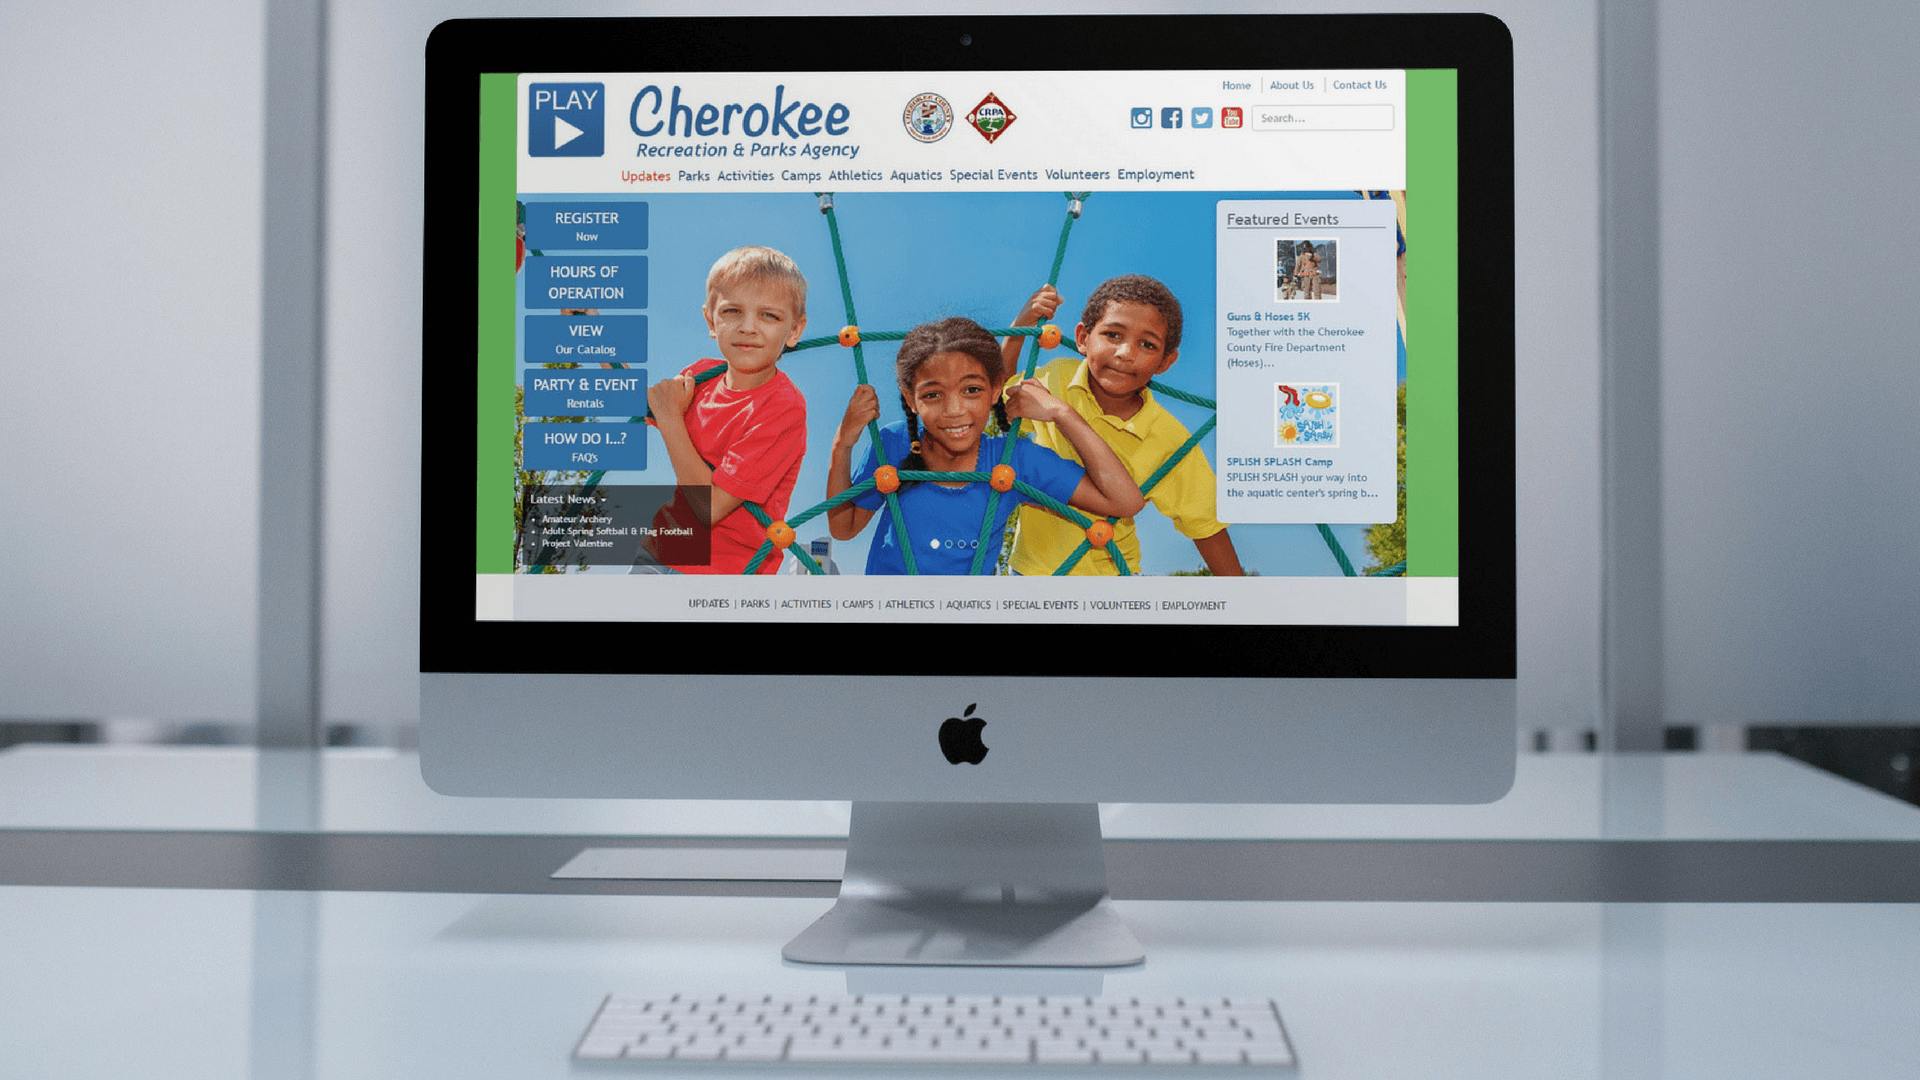 020917-Blog-Cherokee County, GA Keeps Citizens Active and Engaged with CivicRec (1).png